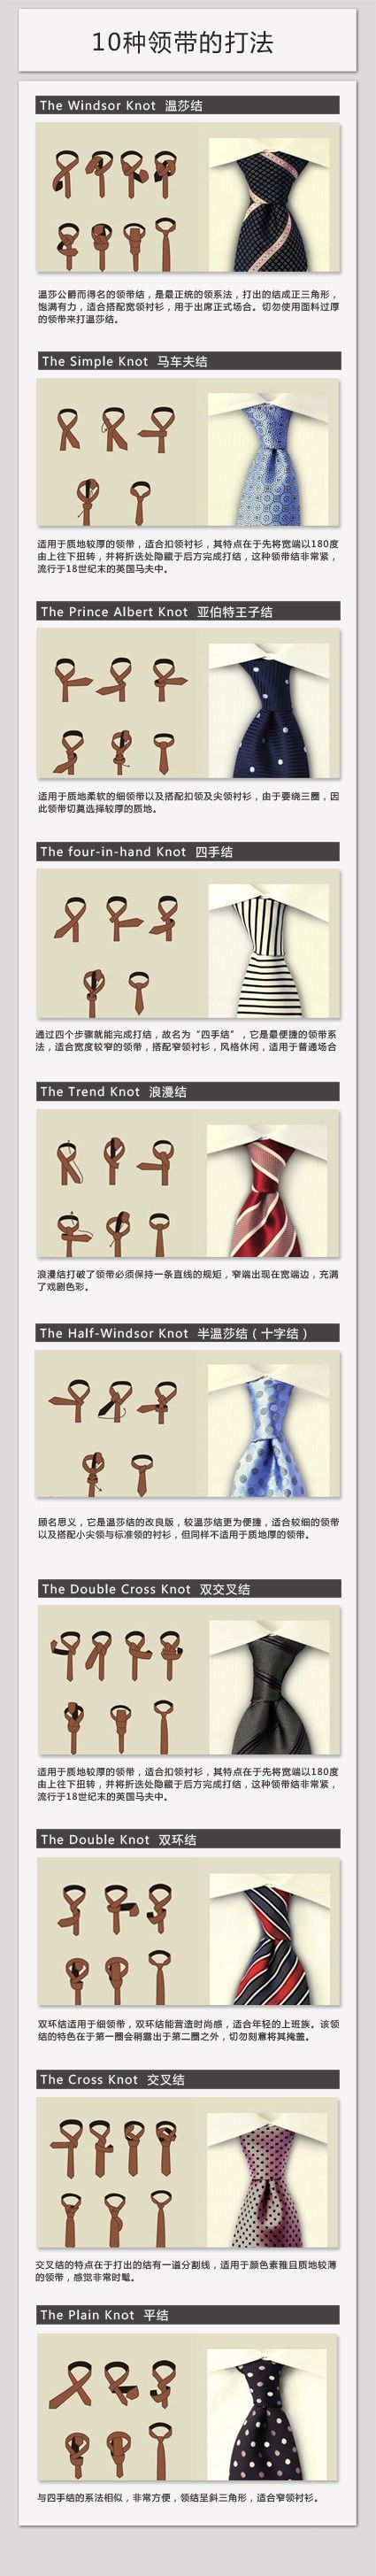 Someday I Hope To Remember How To Tie A Tie Without Having To Look It Up